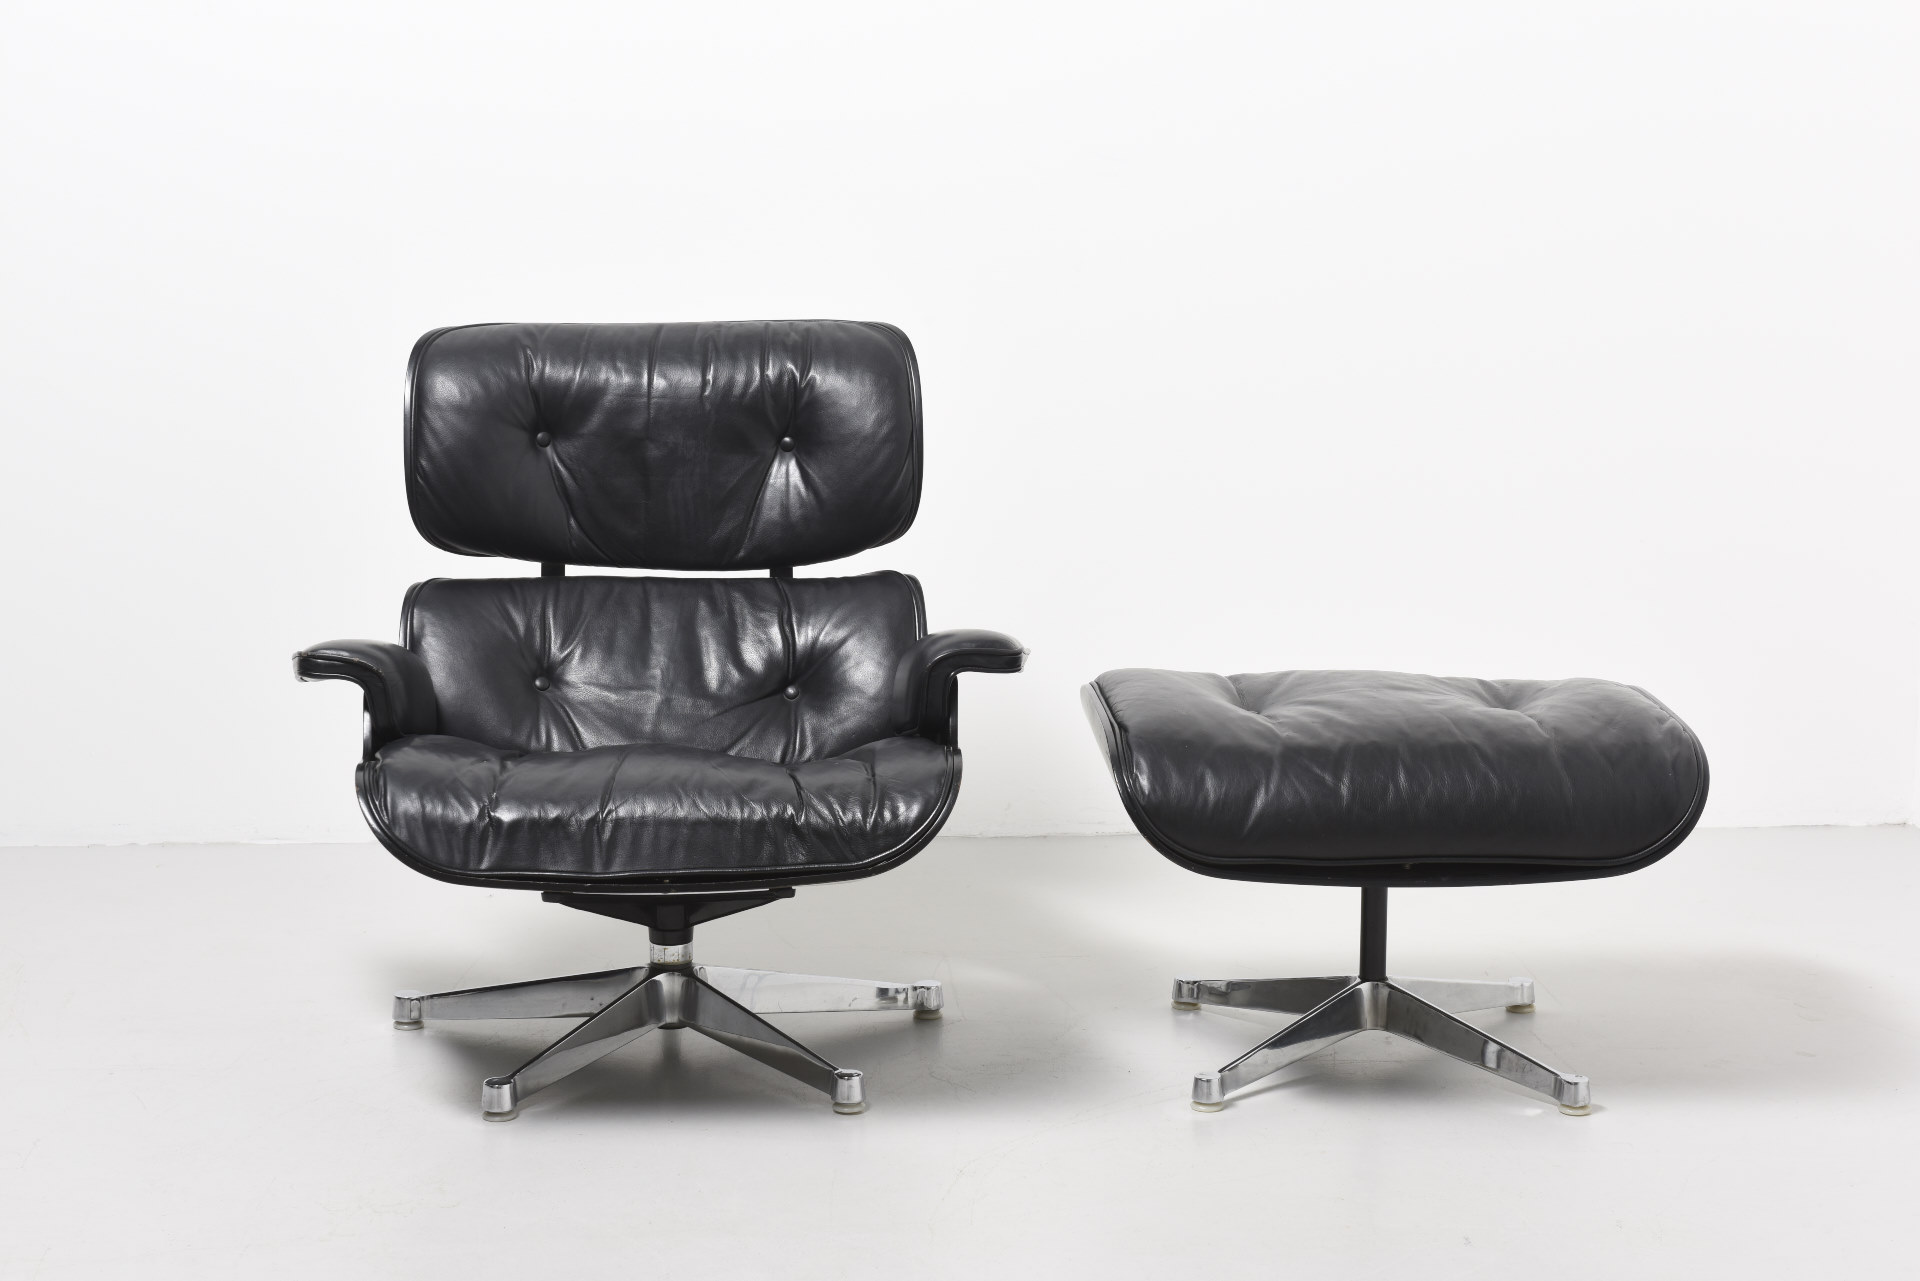 Eames Lounge Chair Tweedehands.Eames Lounge Chair With Ottoman Charles Ray Eames